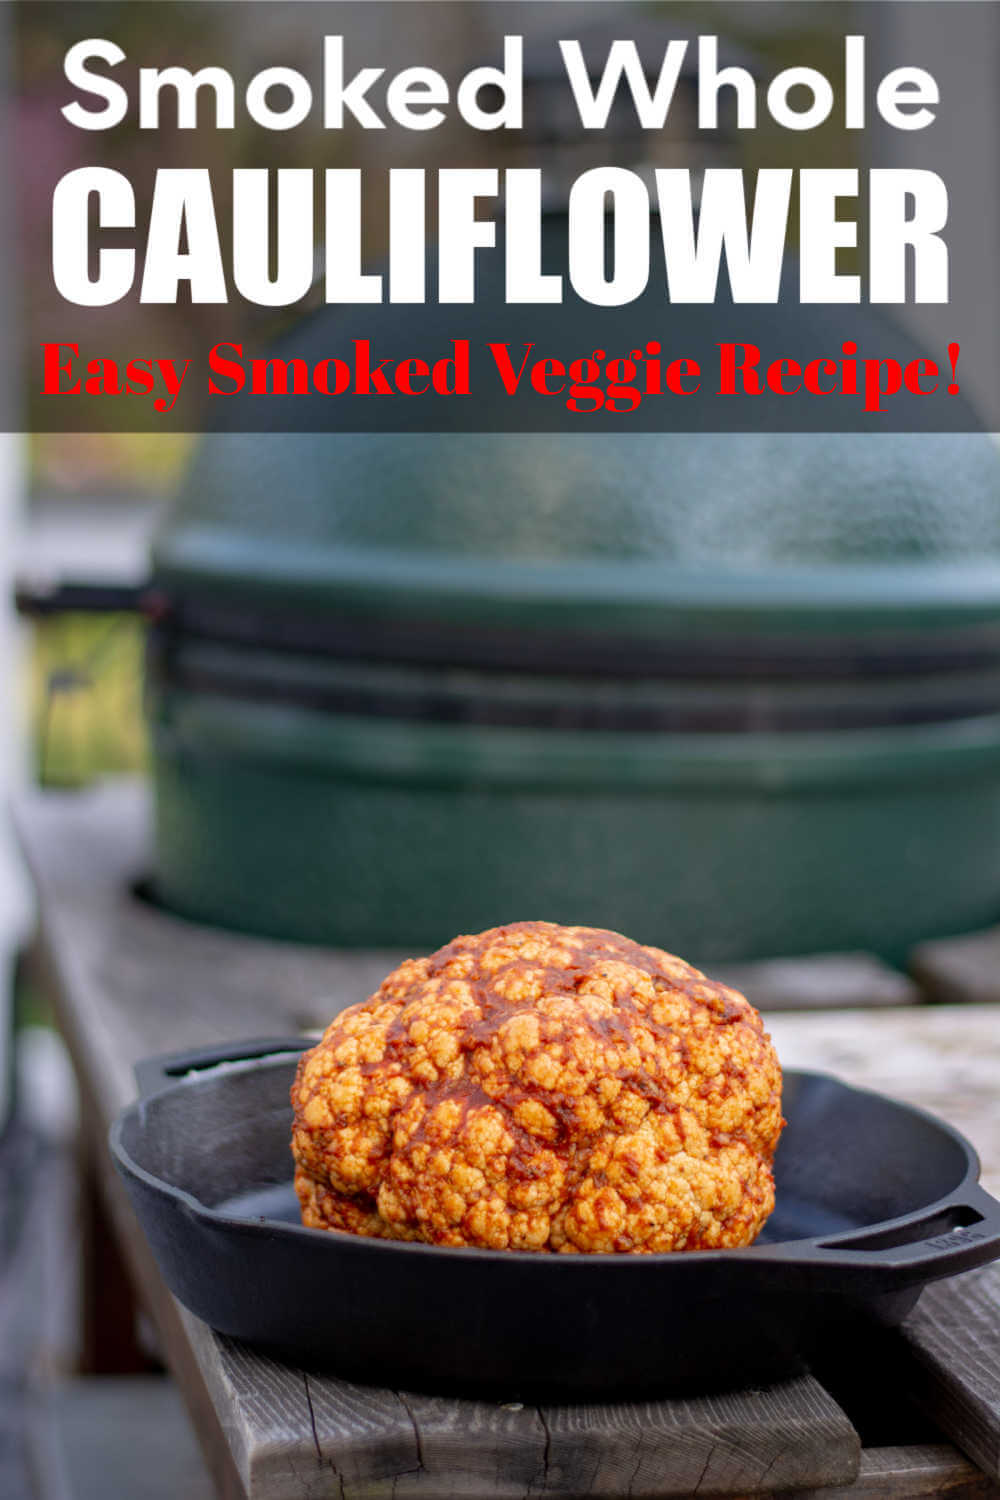 Smoked Cauliflower – Rich and Savory Flavor